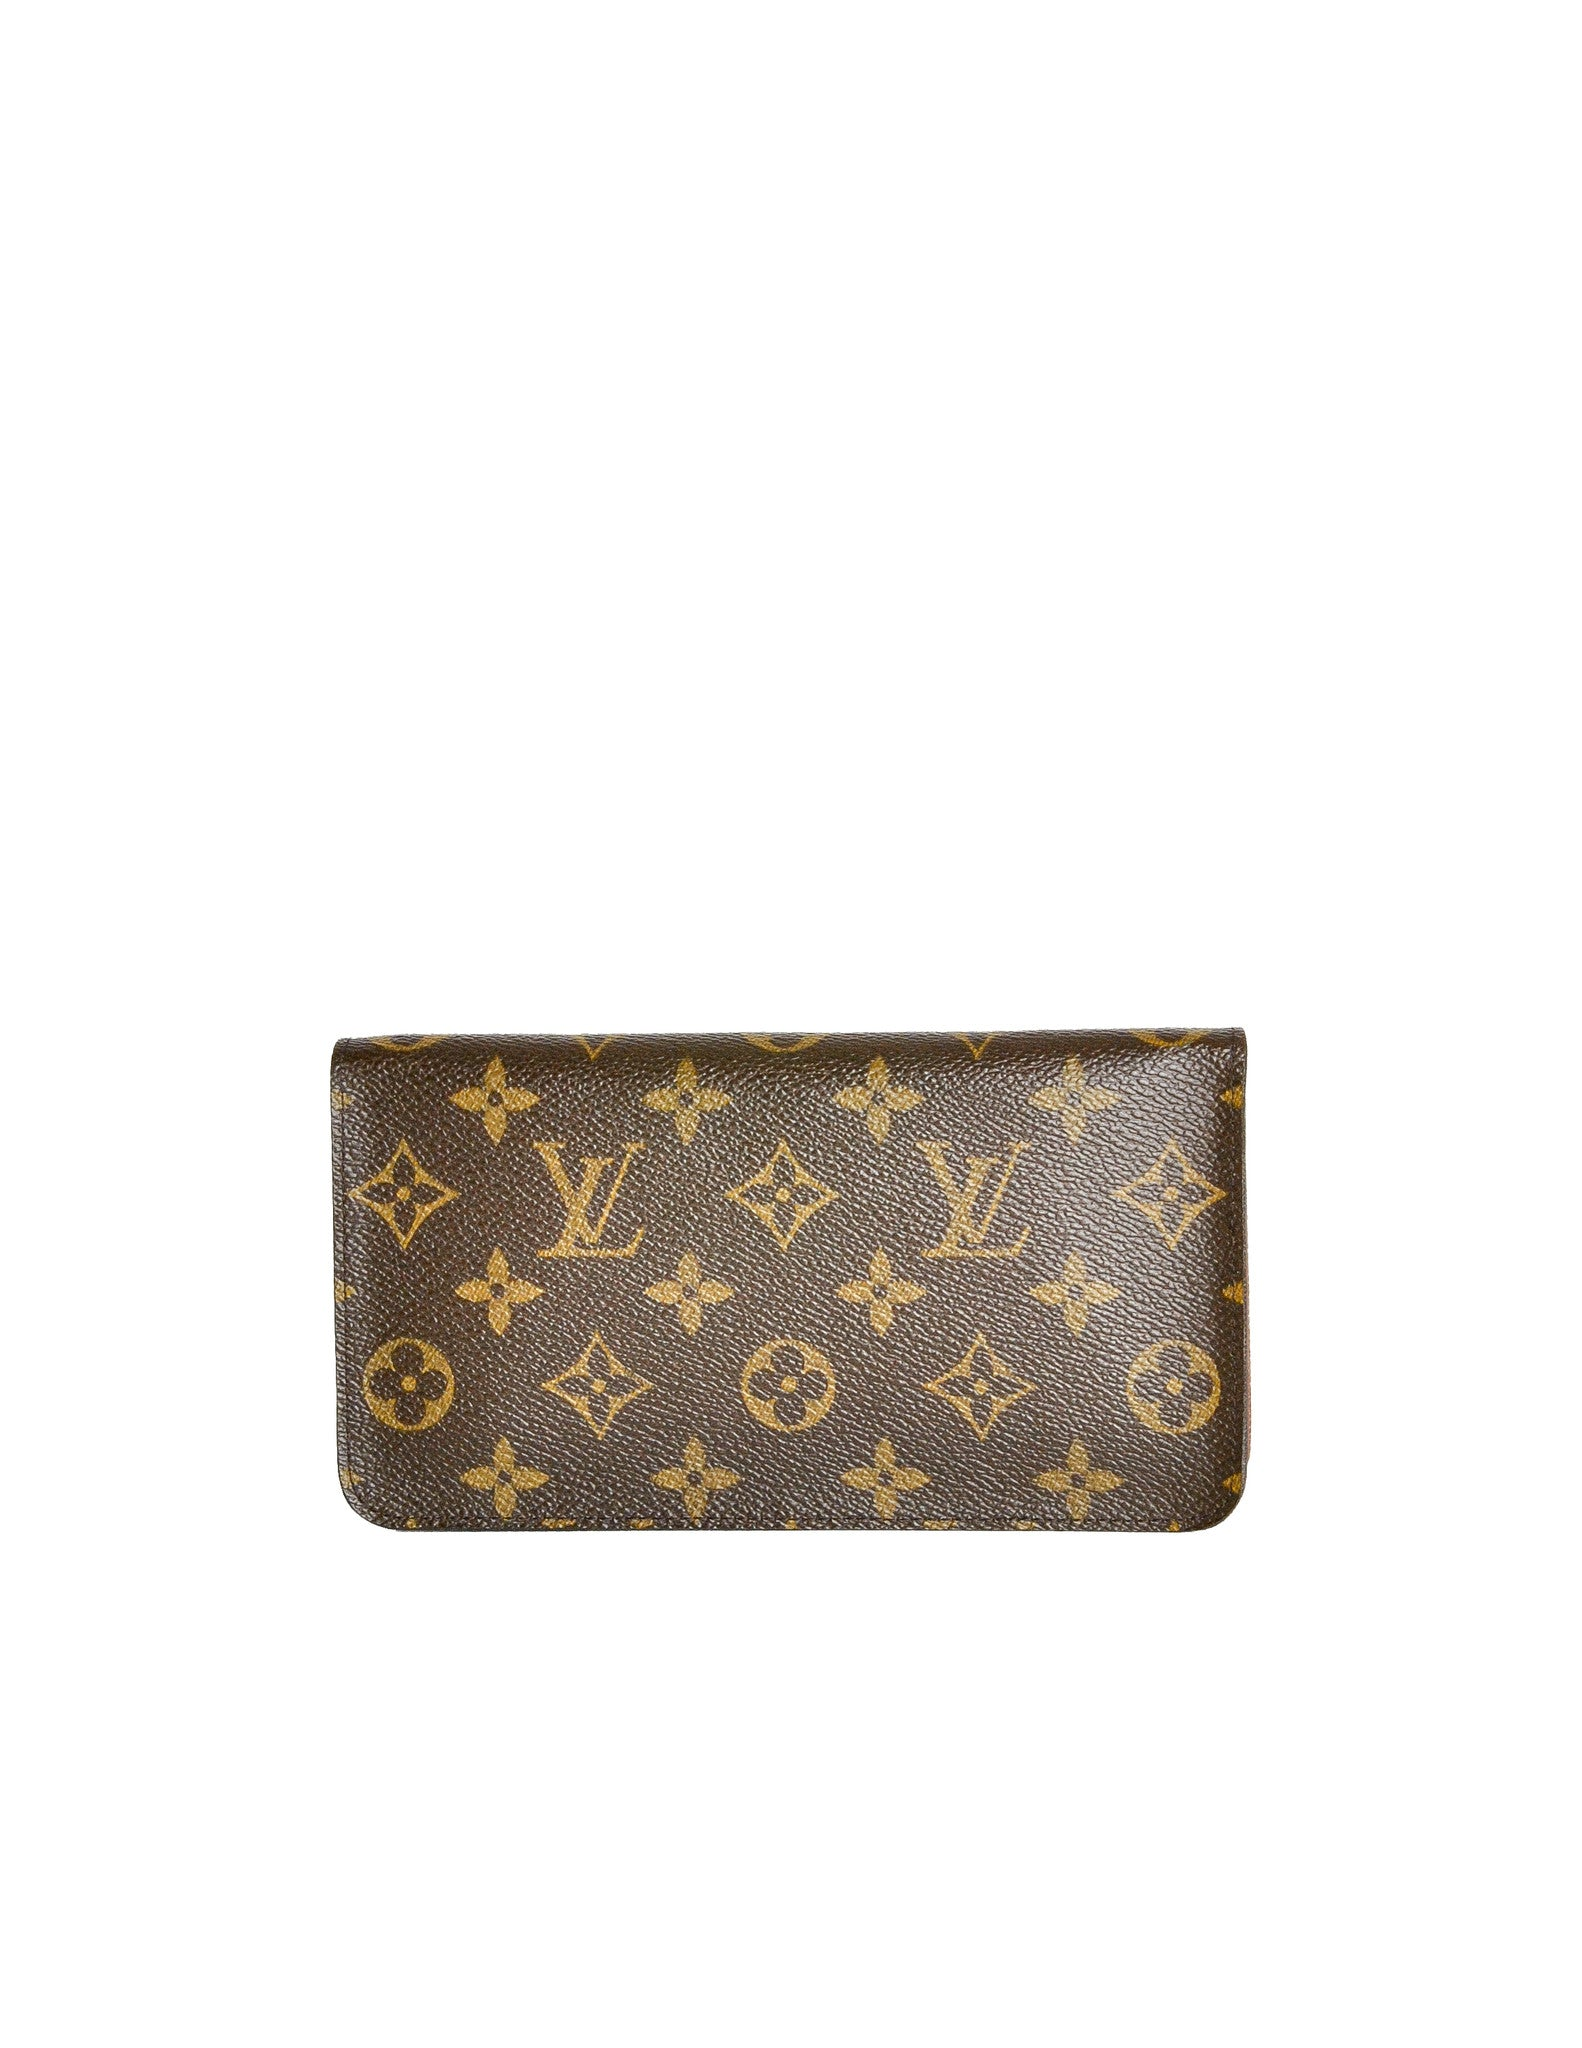 Louis Vuitton Vintage Classic Monogram Wallet - Amarcord Vintage Fashion  - 1